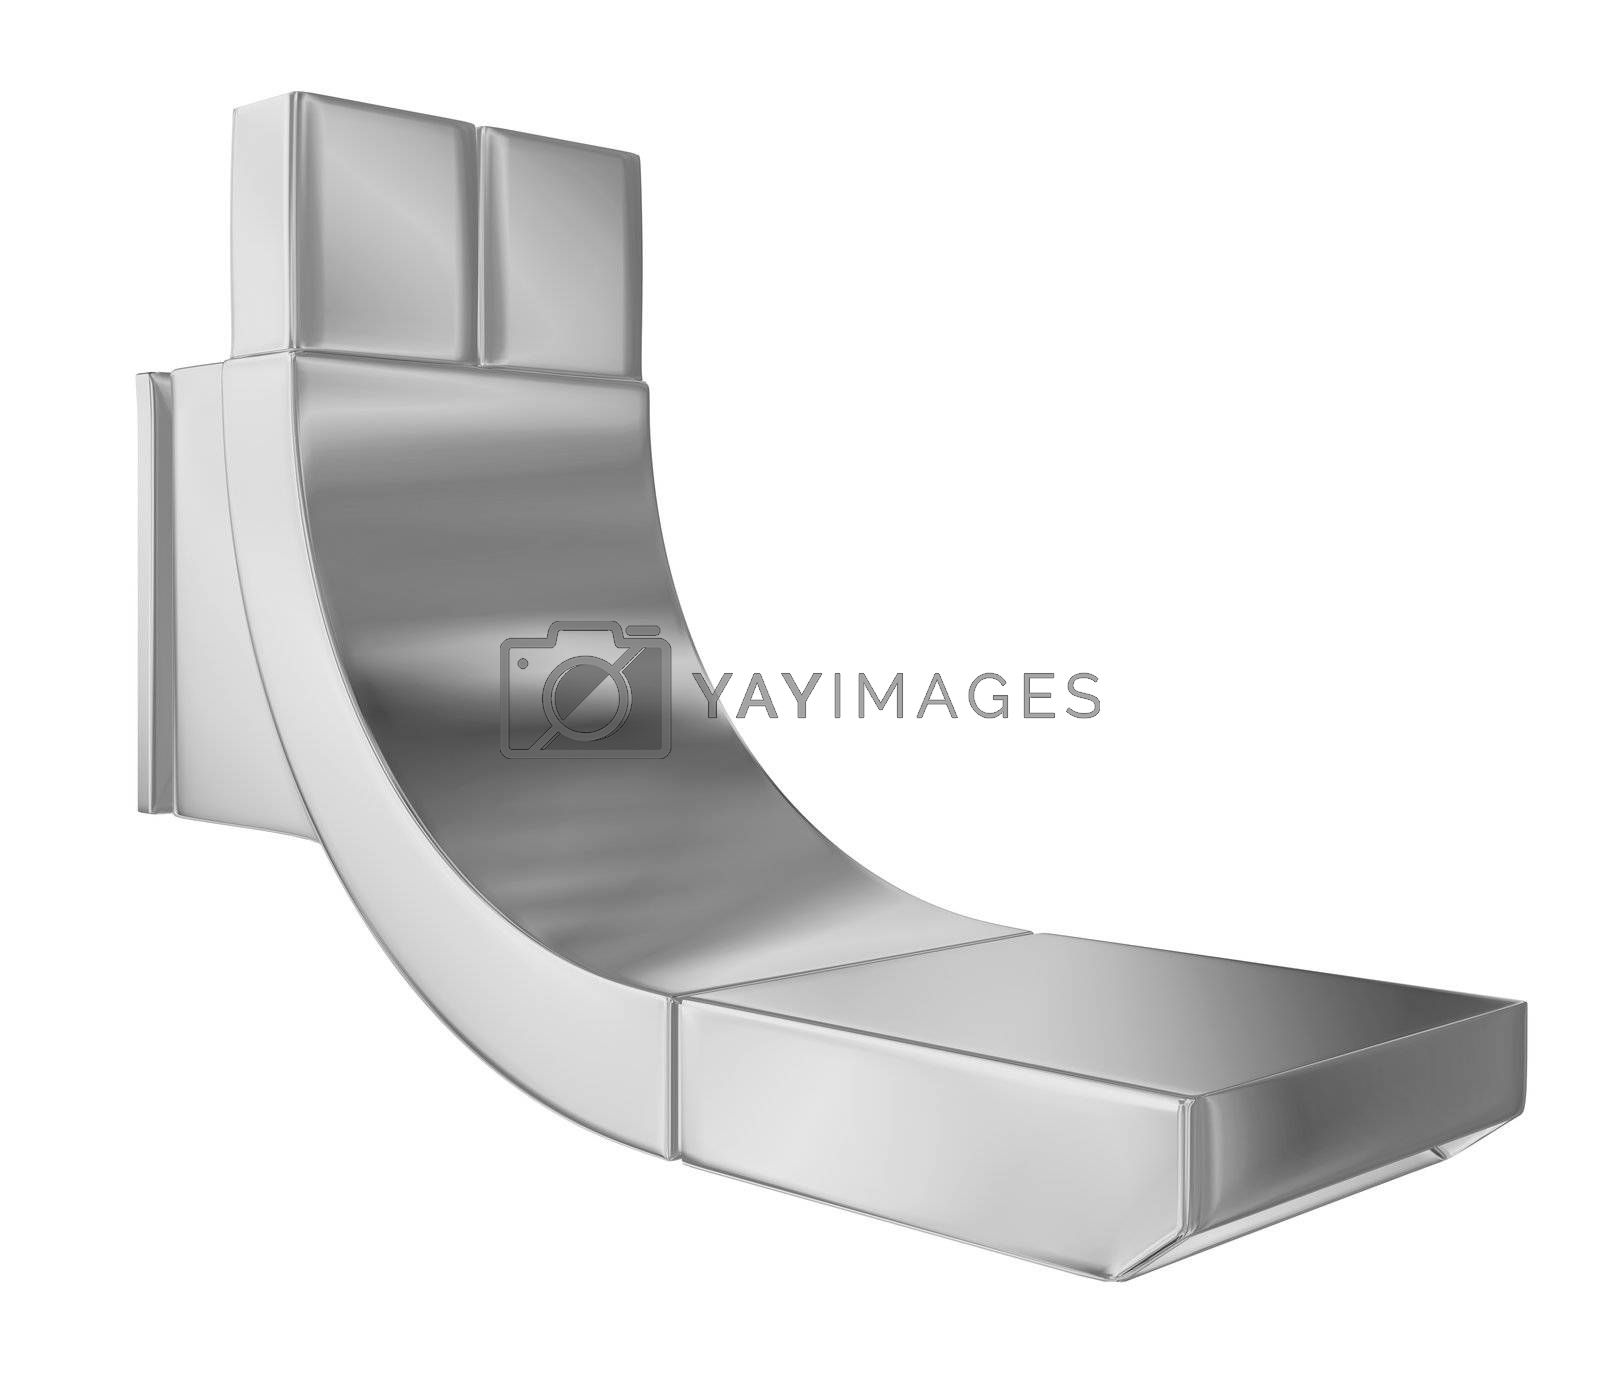 Modern faucet with chrome finishing, 3d illustration, isolated against a white background